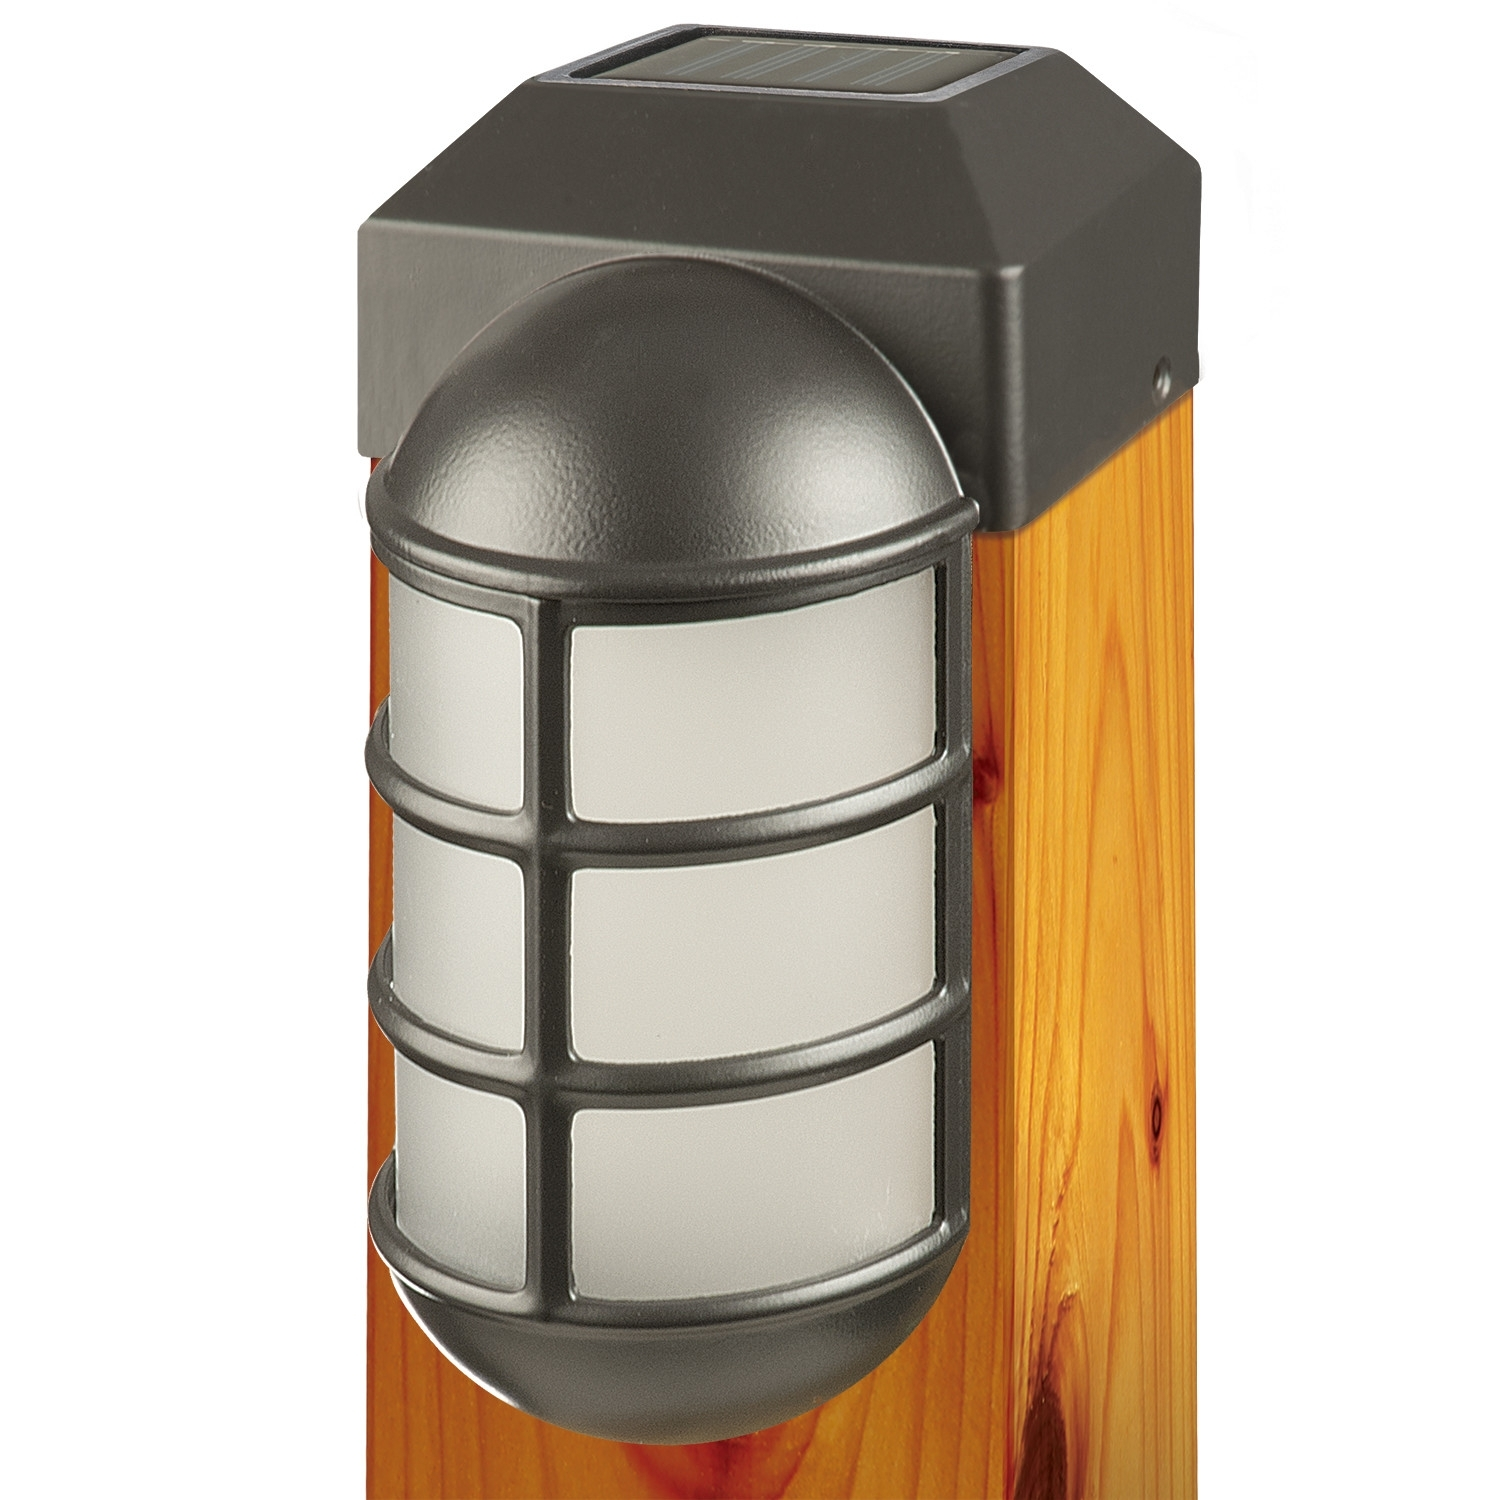 1 Light Fence Post Cap | Fence Post Caps, Fences And Cap Inside Modern Outdoor Solar Lights At Wayfair (#1 of 15)